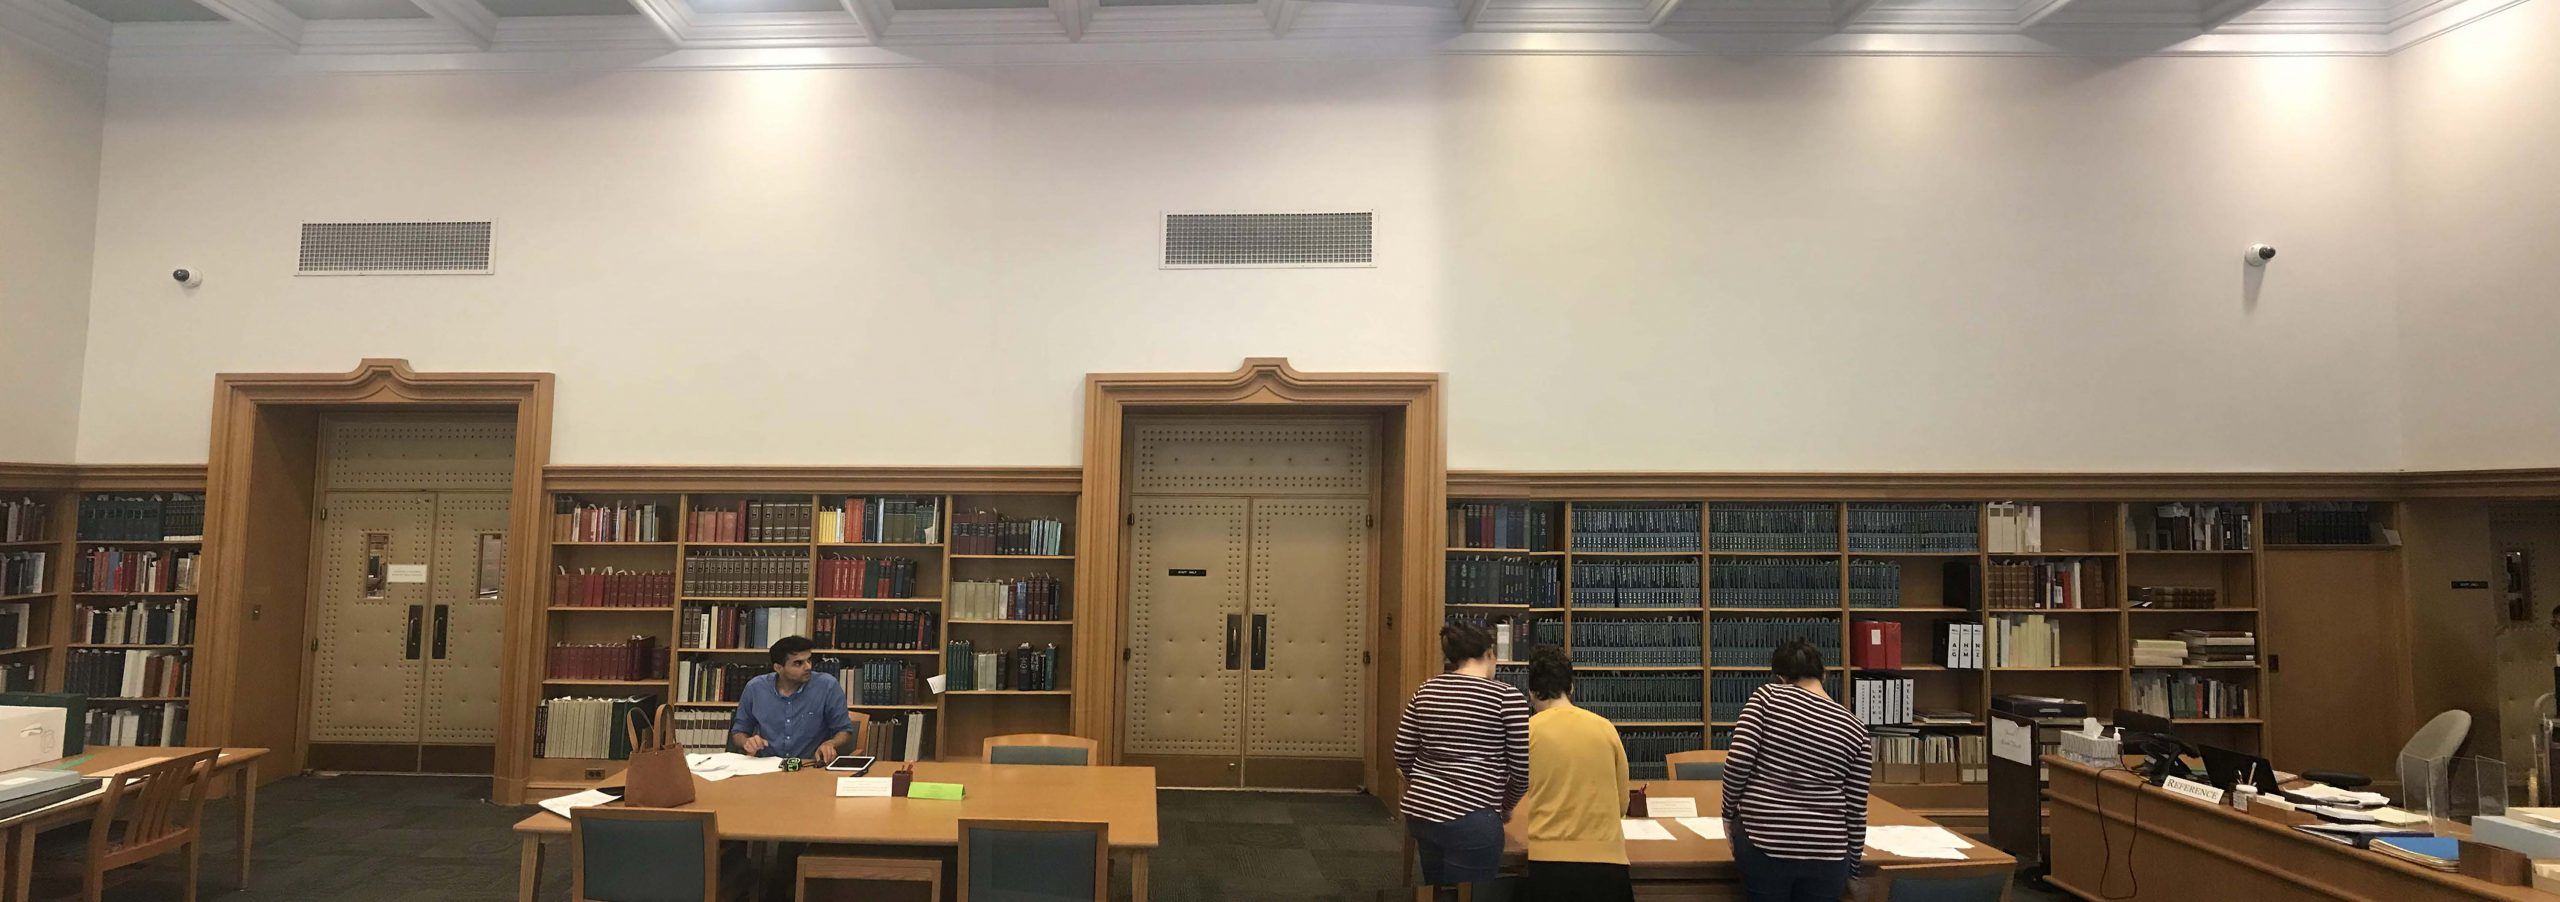 Lilly Library Reading Room  Bicentennial Murals